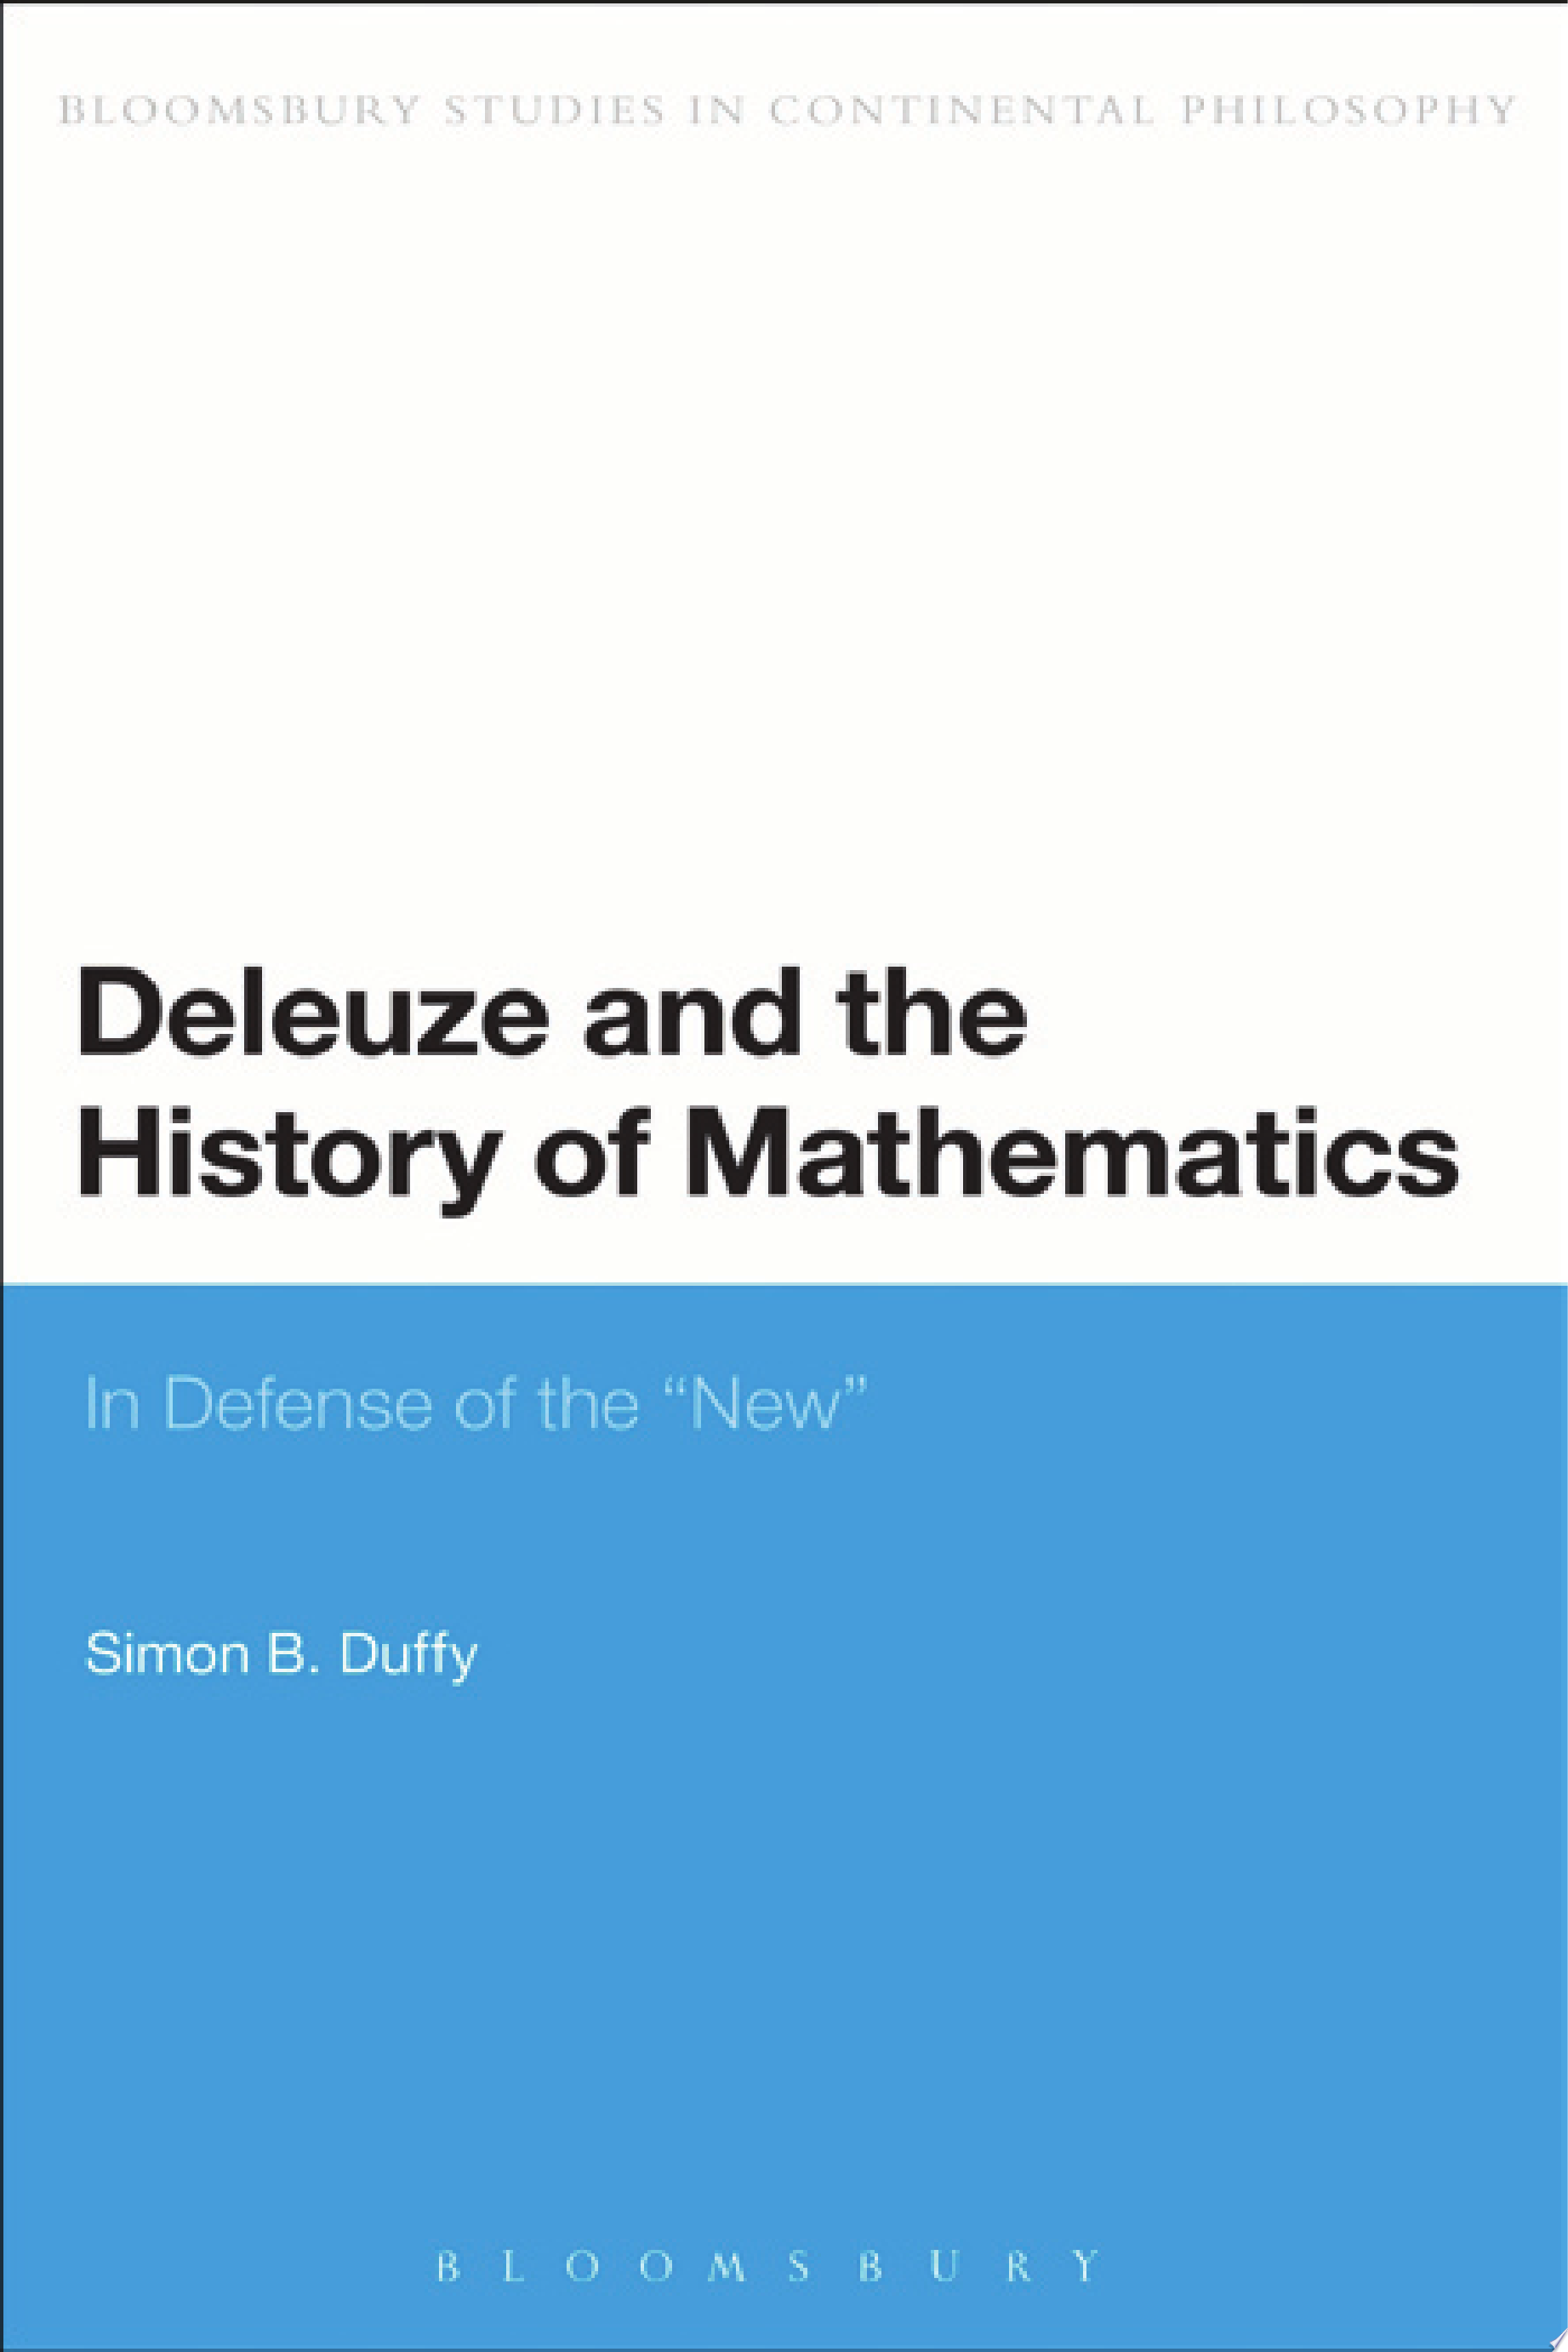 Deleuze and the History of Mathematics